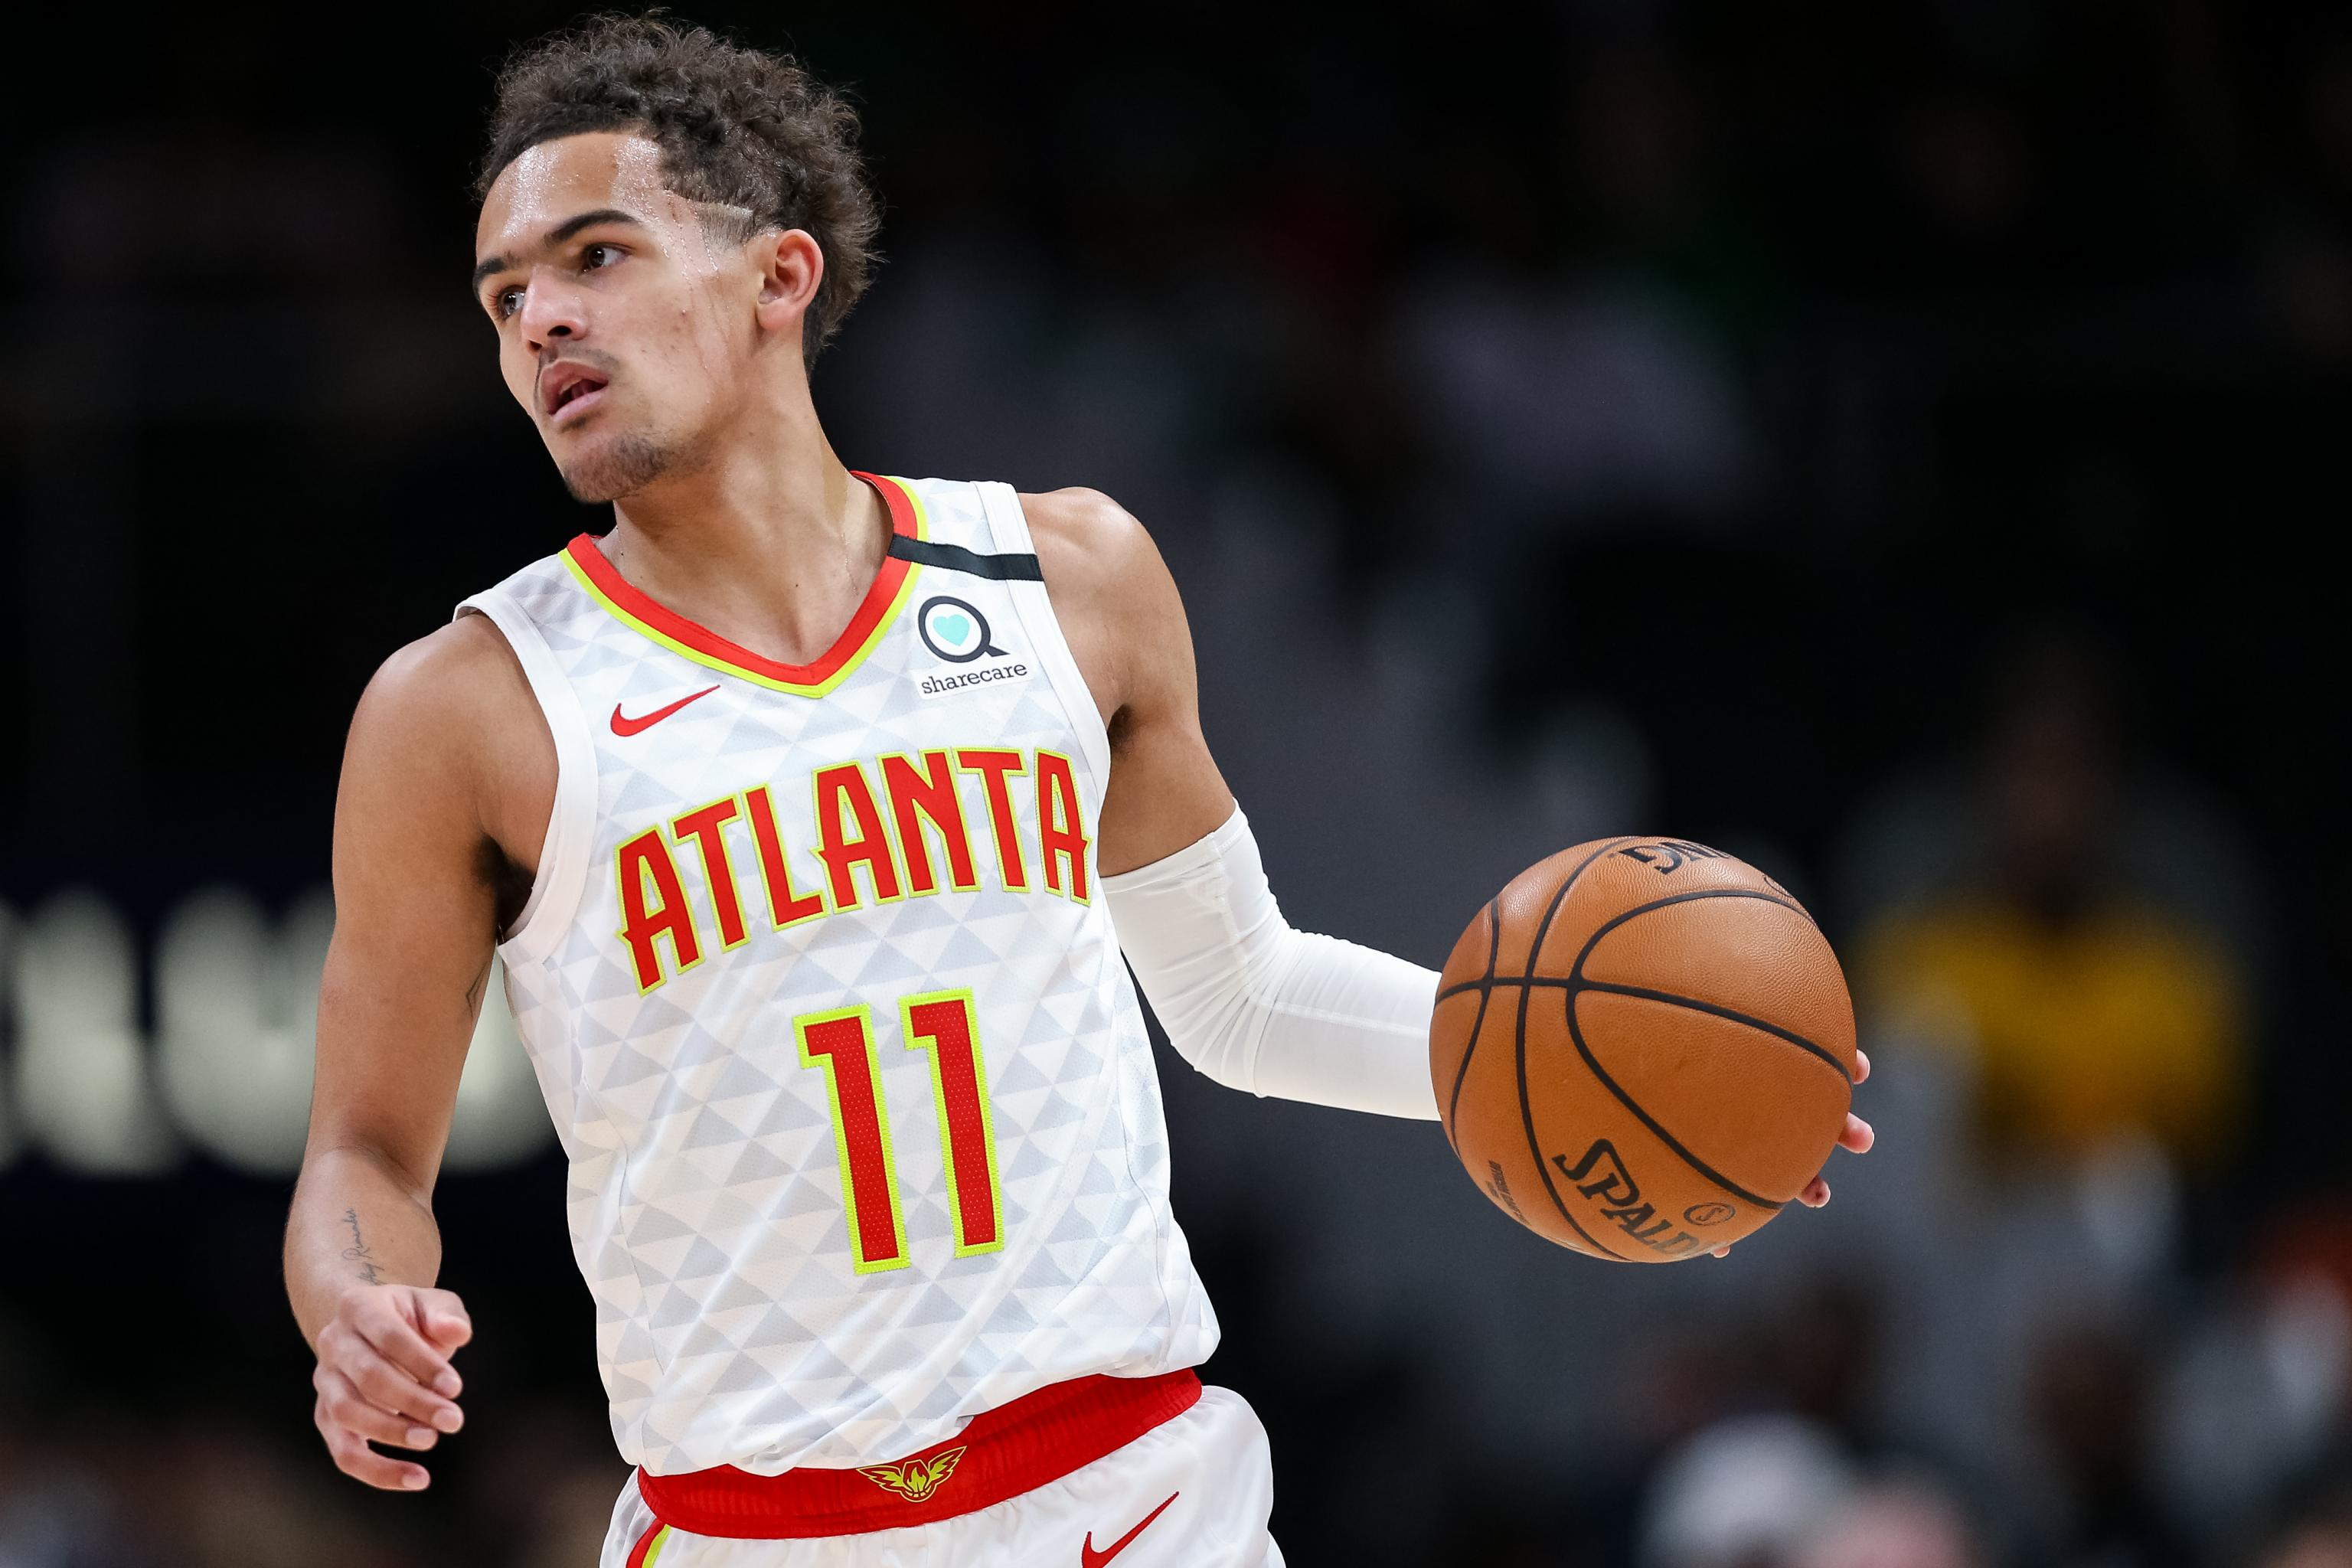 2020 NBA 3 Point Contest Adds 2 DEW Zone Shots from 6 Feet 3072x2048